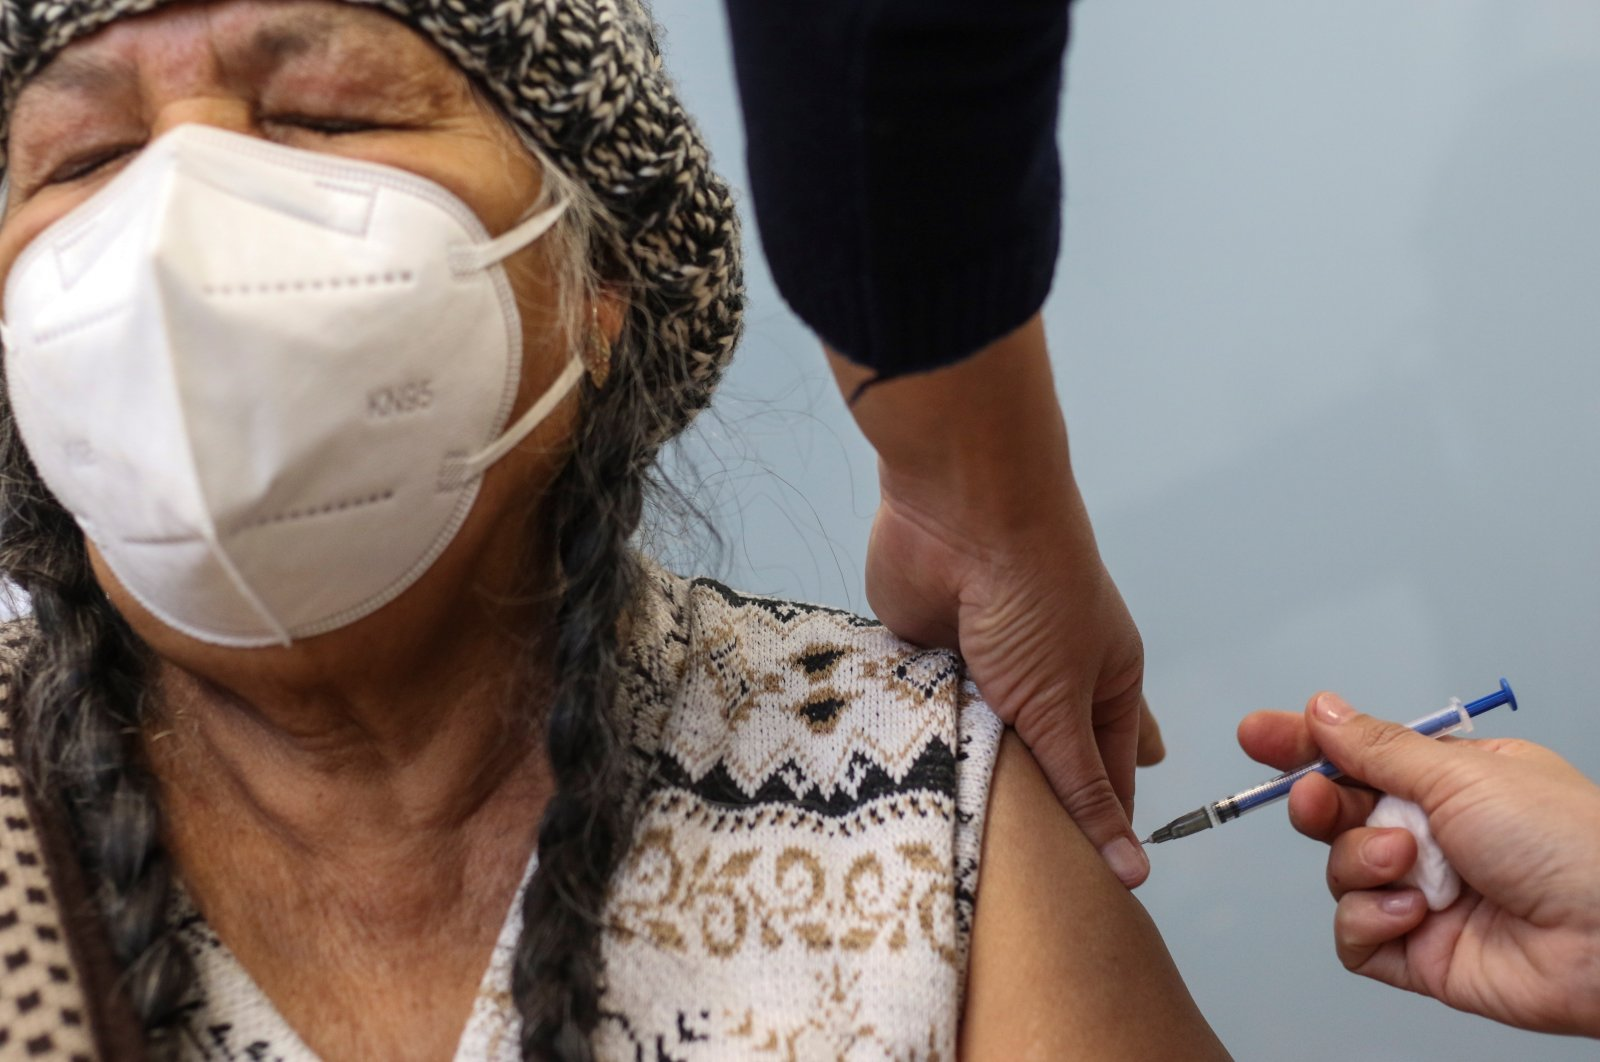 An elderly woman receives the vaccine against COVID-19, at a hospital in the state of Guanajuato, Mexico, Feb. 15, 2021. (EPA Photo)